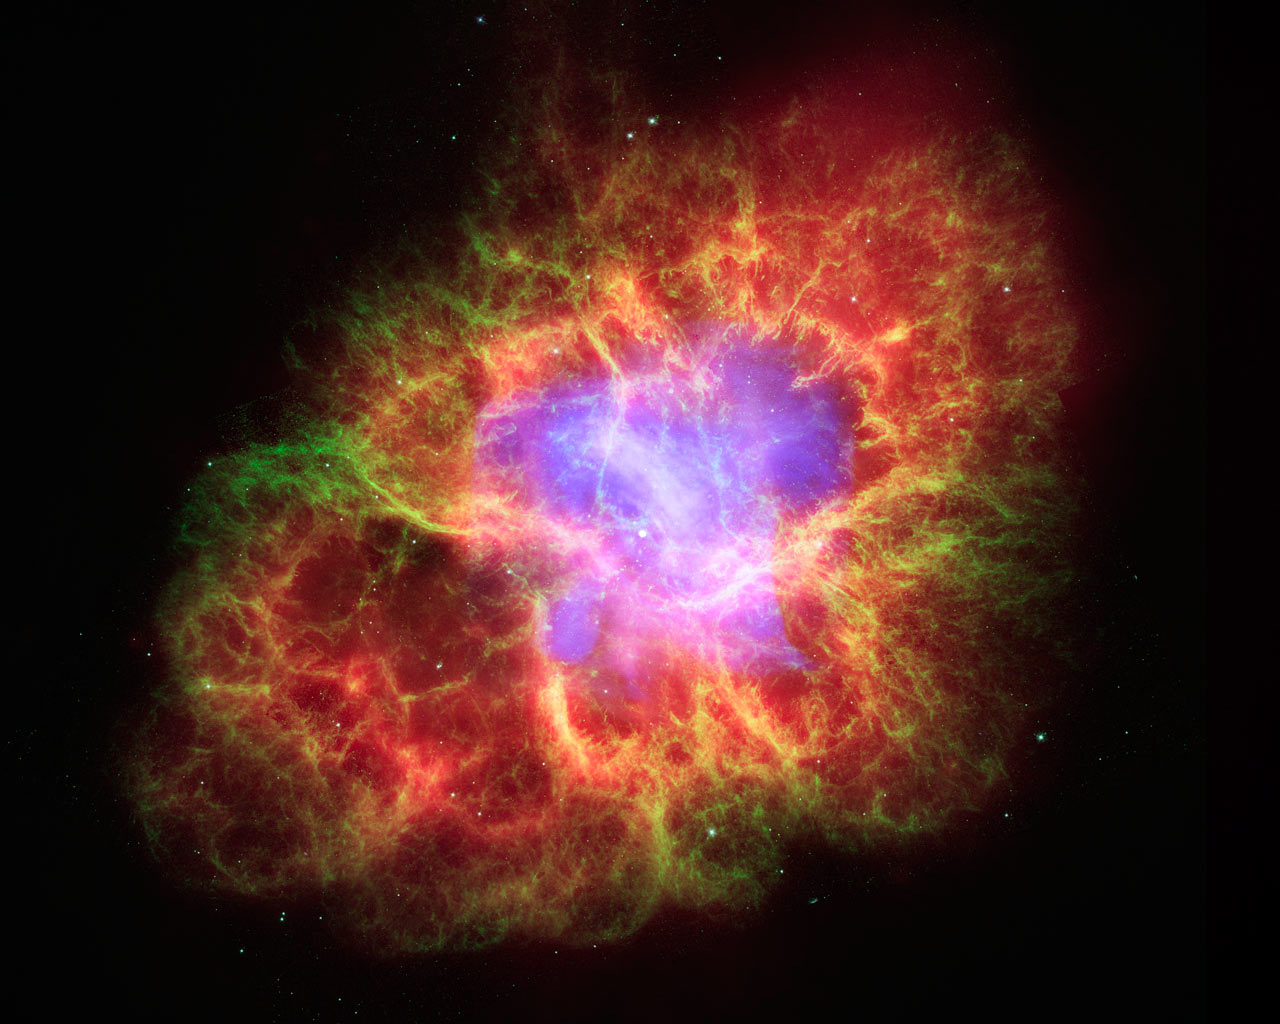 Crab Nebula Wallpaper 1797 Hd Wallpapers in Space   Imagescicom 1280x1024